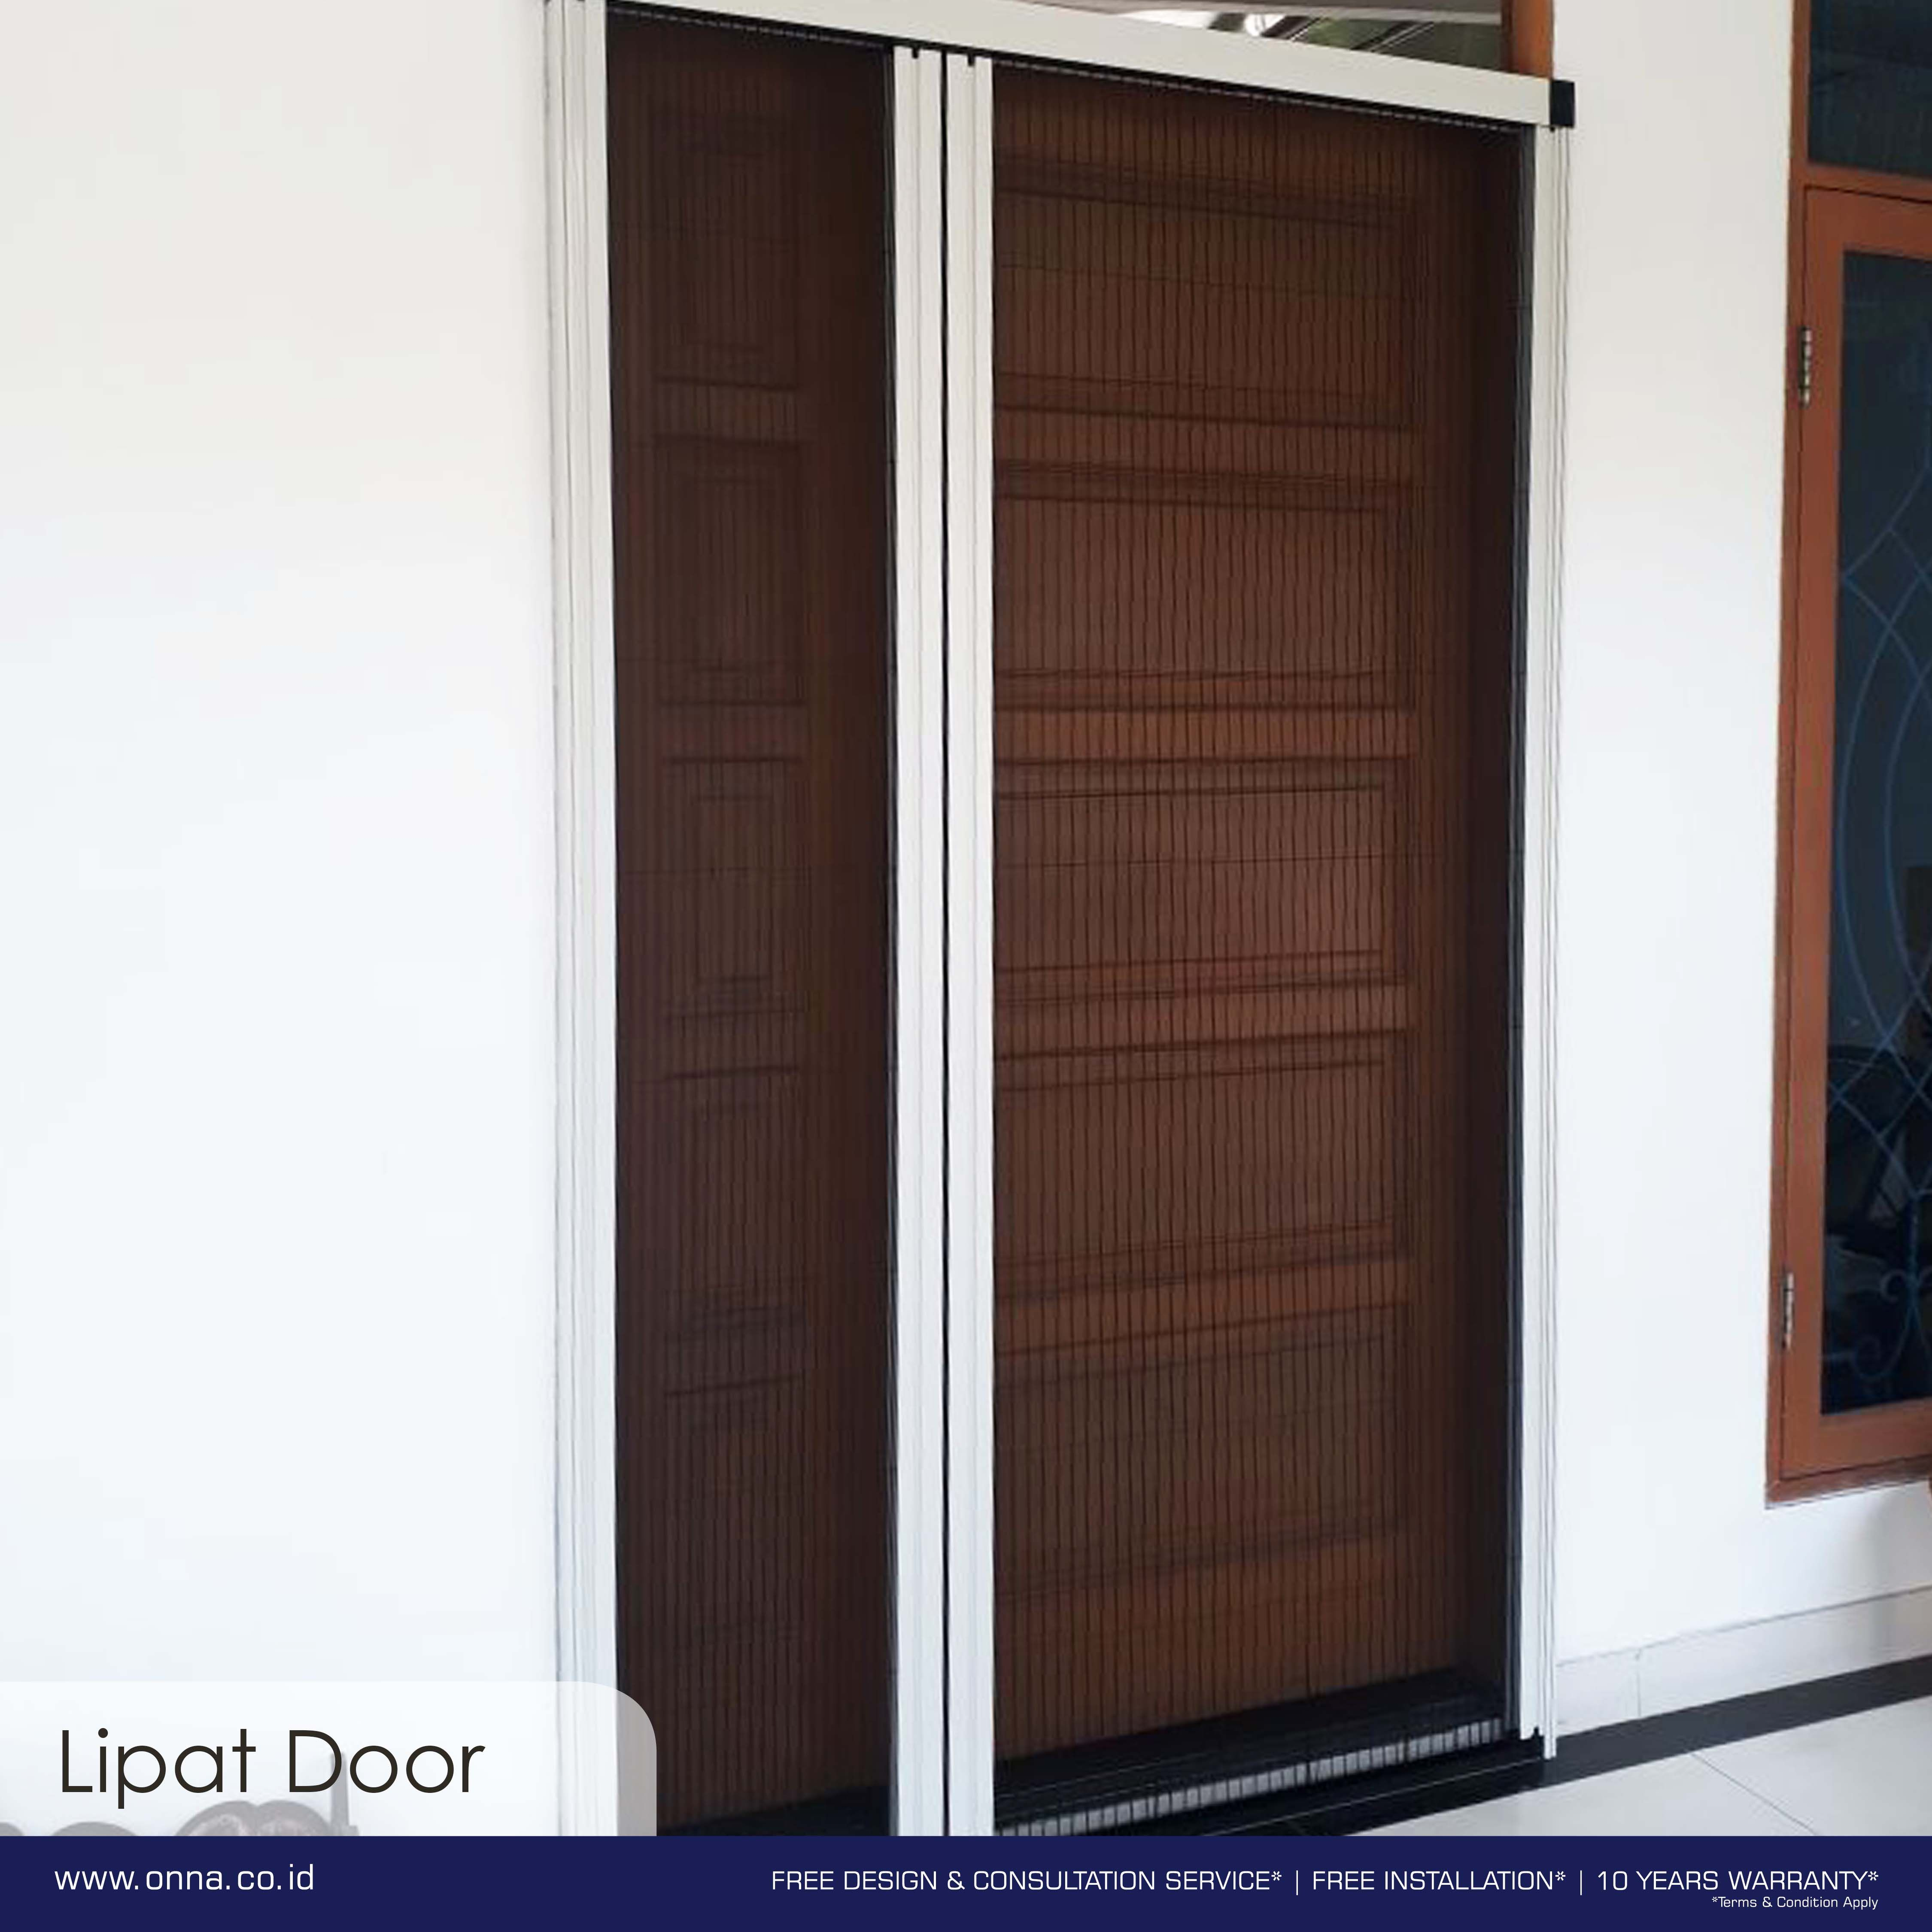 The Main Objectives To Install The Insect Screen For Doors Is To